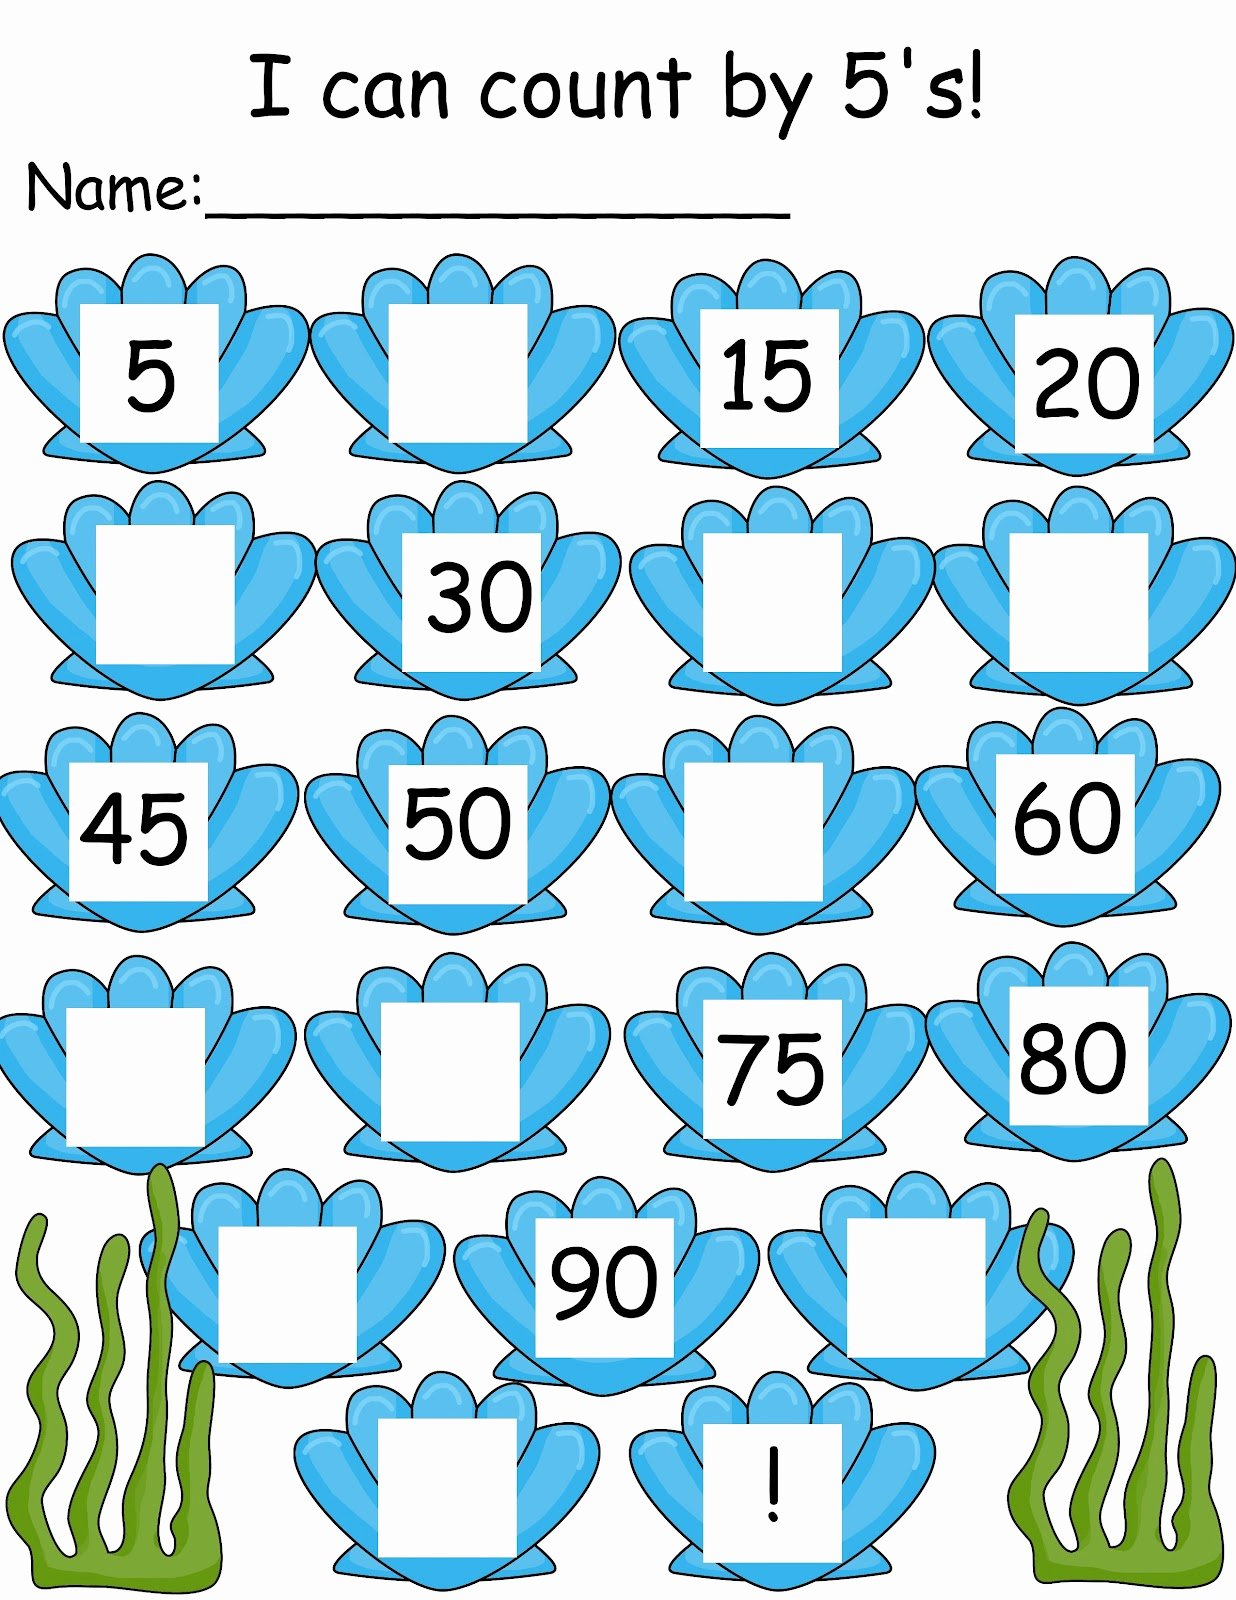 Count by 5s Worksheet Unique the Crazy Pre K Classroom Under the Sea Ocean themed